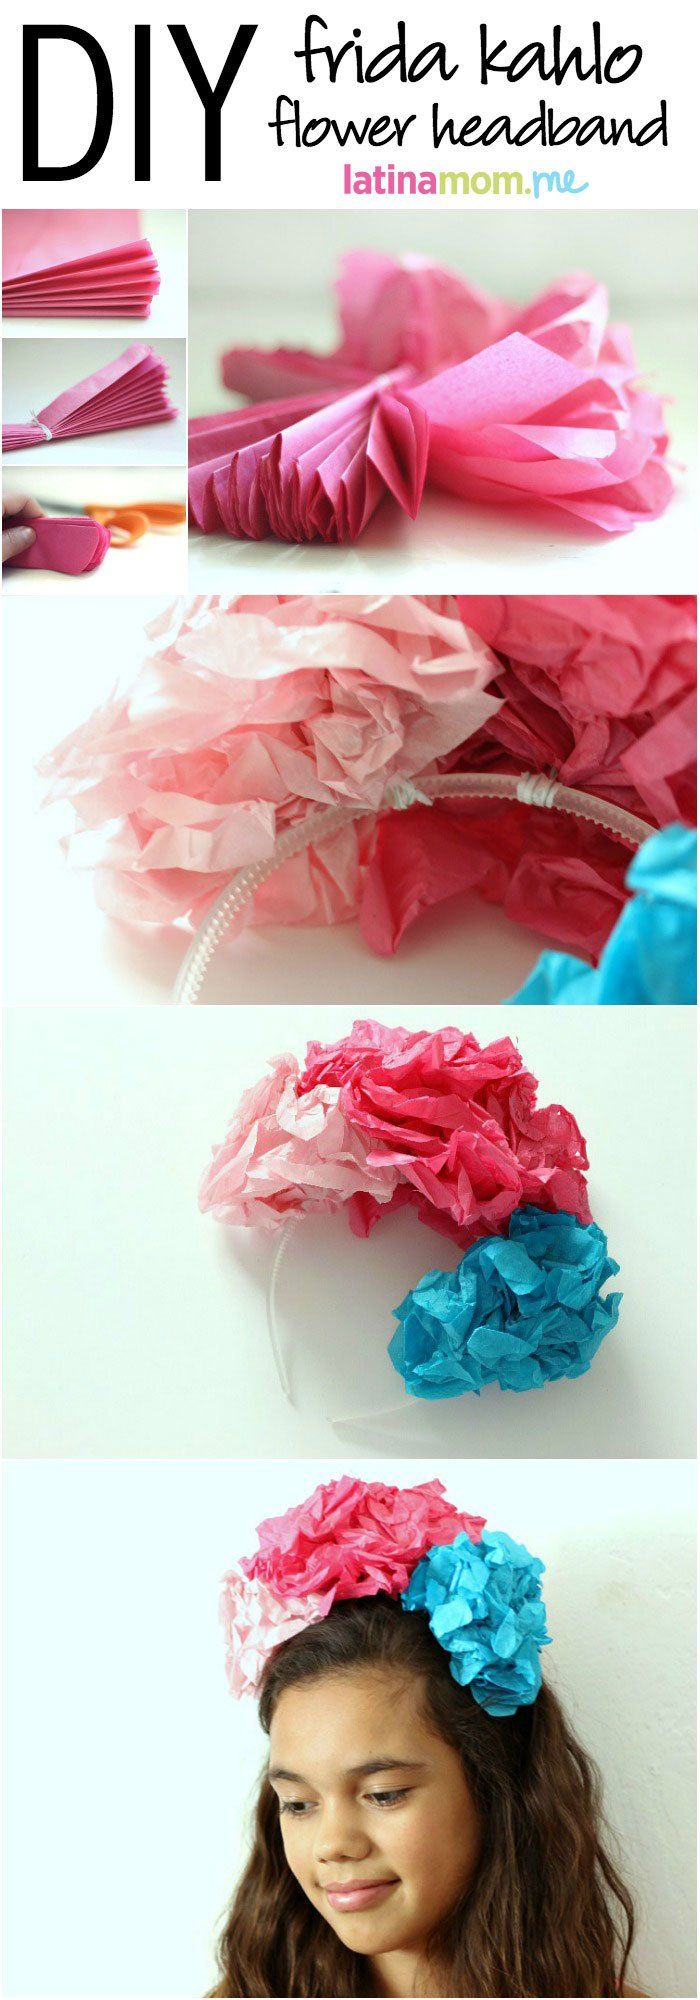 DIY Frida Kahlo-Inspired Flower Crown For Kids - Make this easy craft in about 15 minutes!